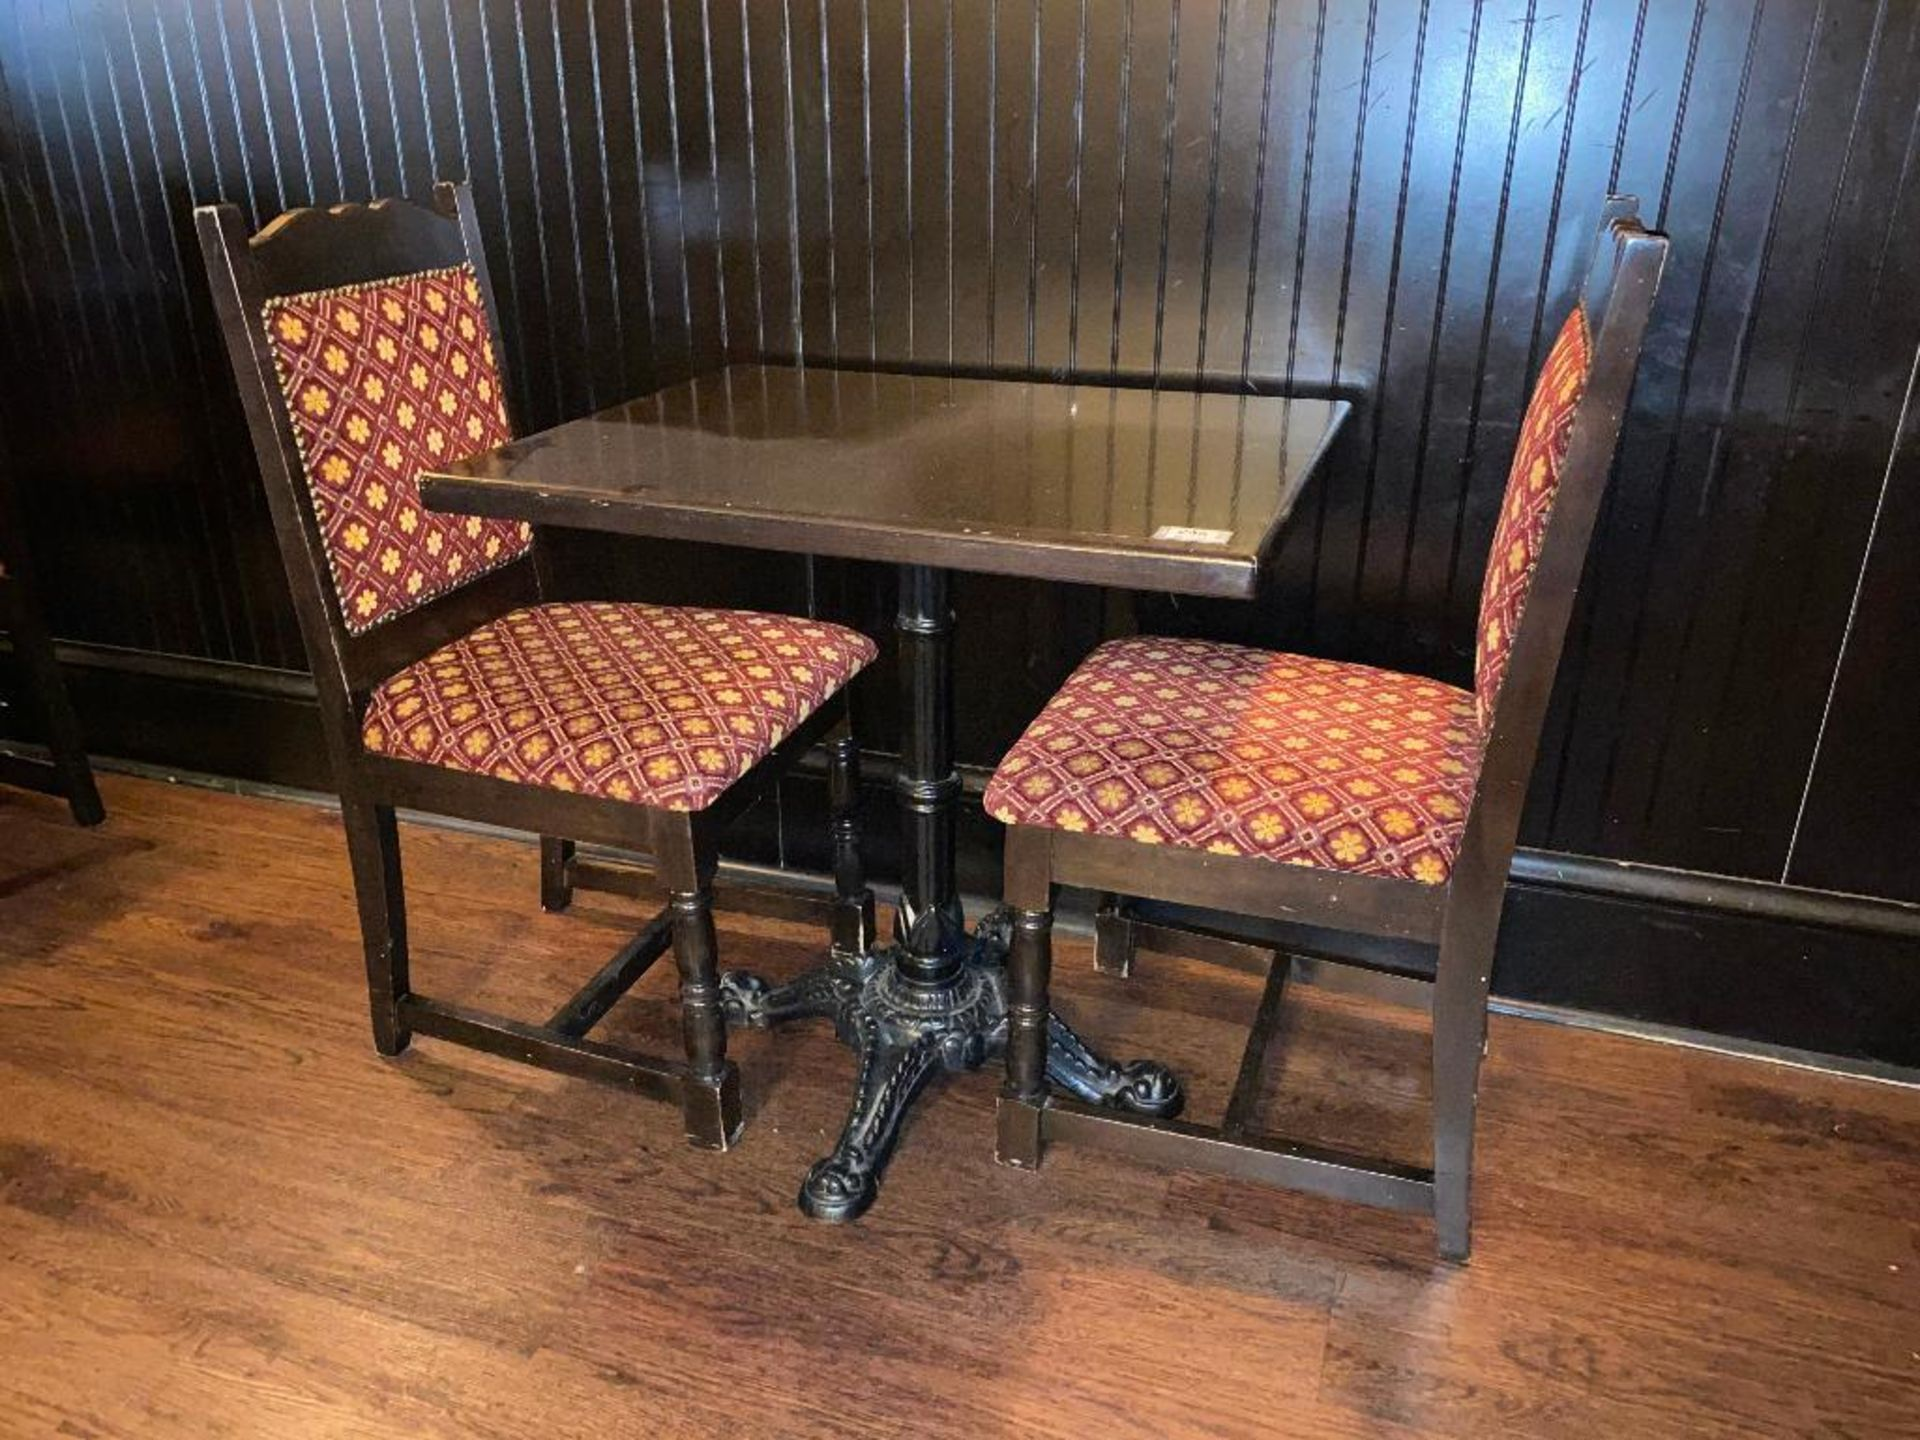 """30"""" X 24"""" WOOD TOP TABLE WITH 2 CHAIRS - 30"""" X 24"""" X 29.5"""" - Image 3 of 3"""